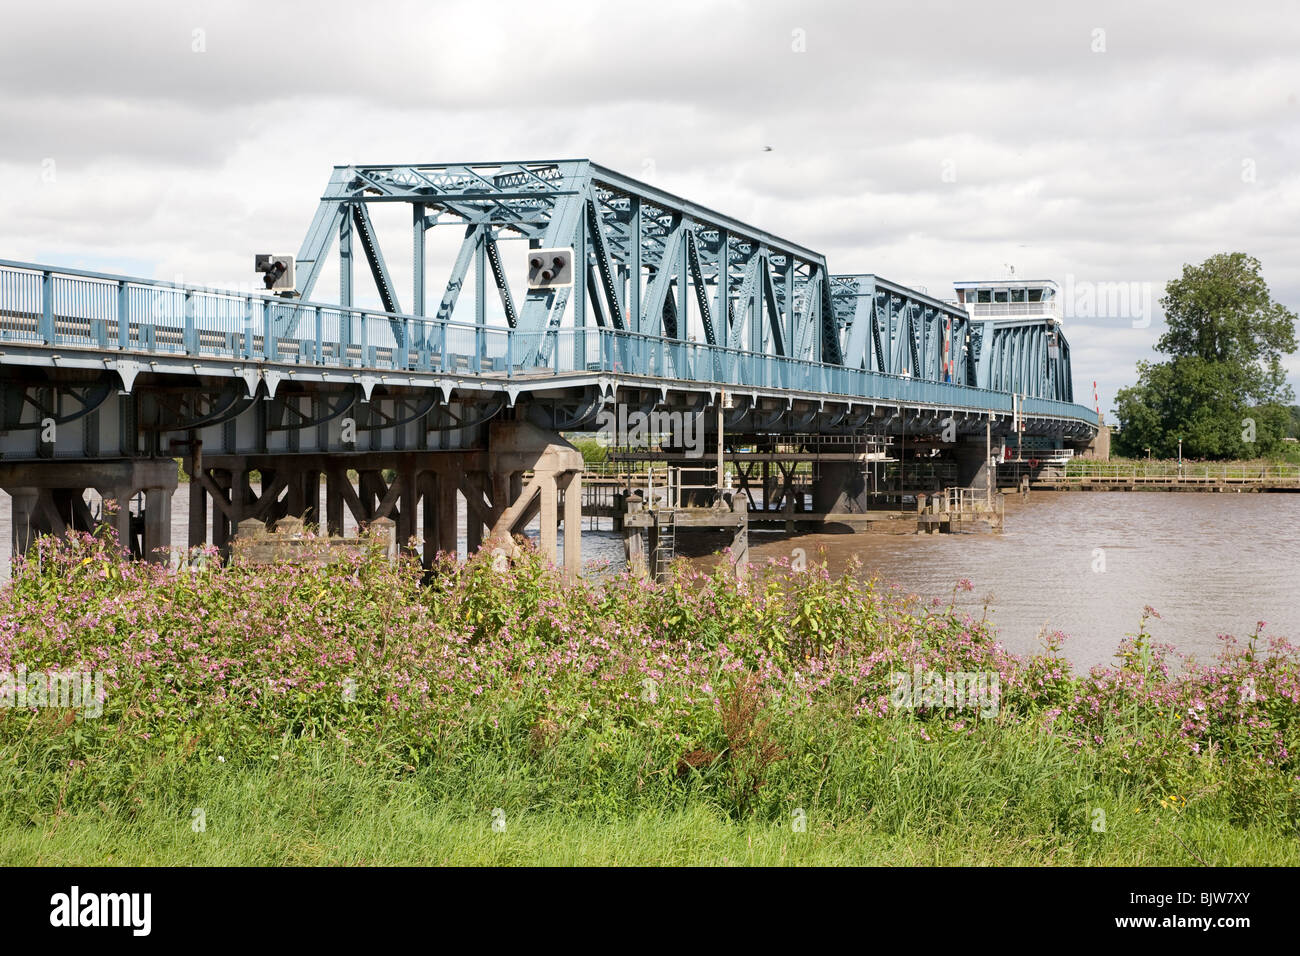 Boothferry Swing Bridge, River Ouse at Howden, East Yorkshire Stock Photo